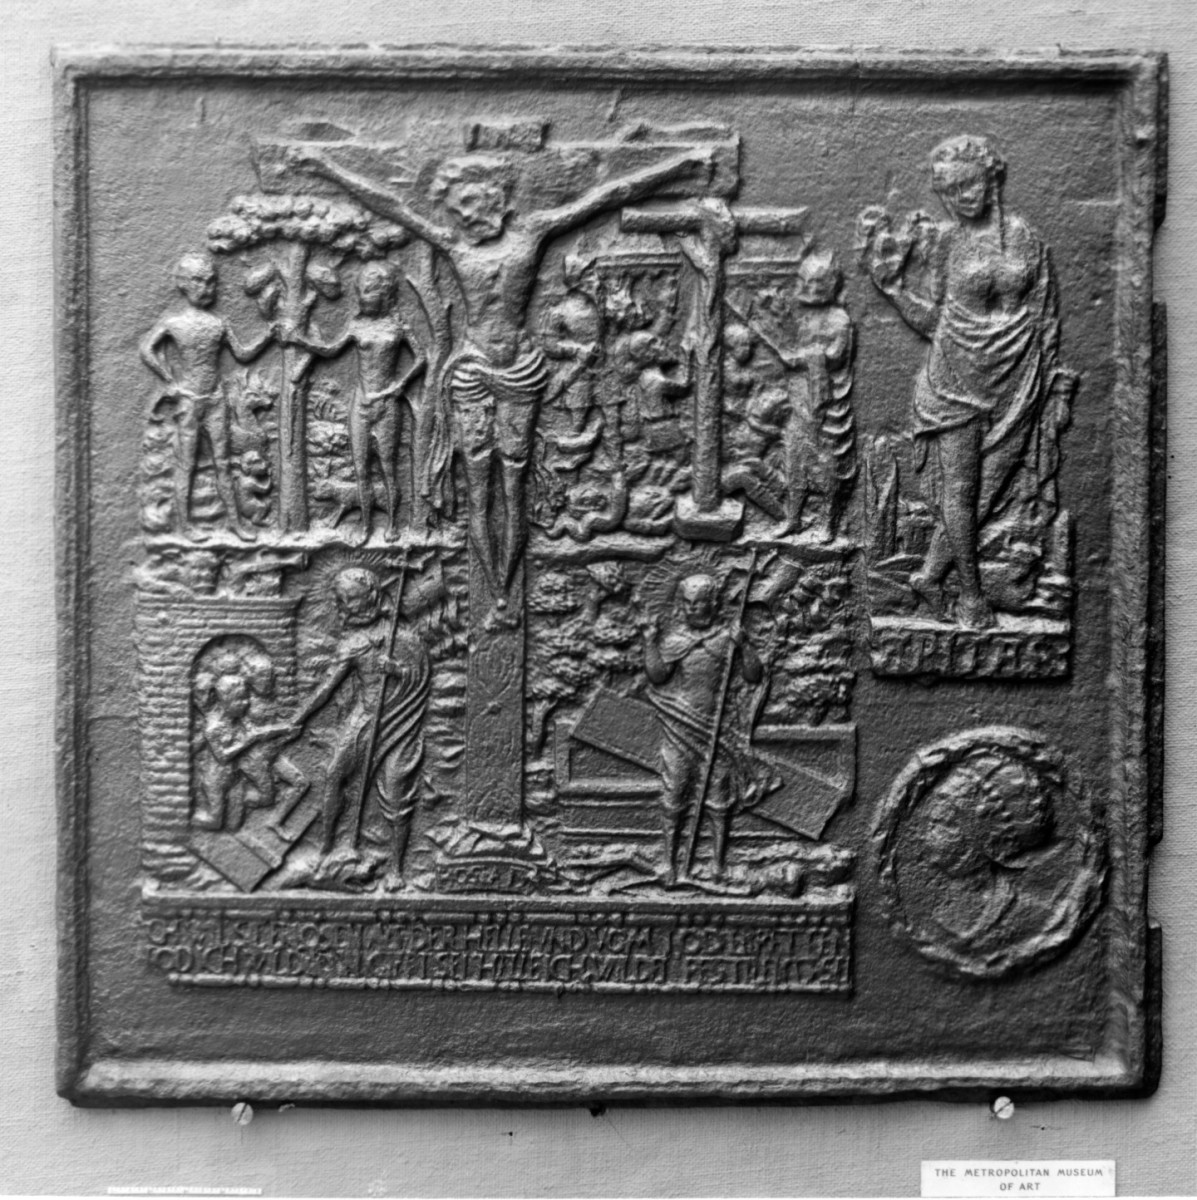 """A biblical-themed side plate from a jamb stove, probably Durham Furnace, Bucks County, Pennsylvania, dated 1756; 26"""" x 28""""."""